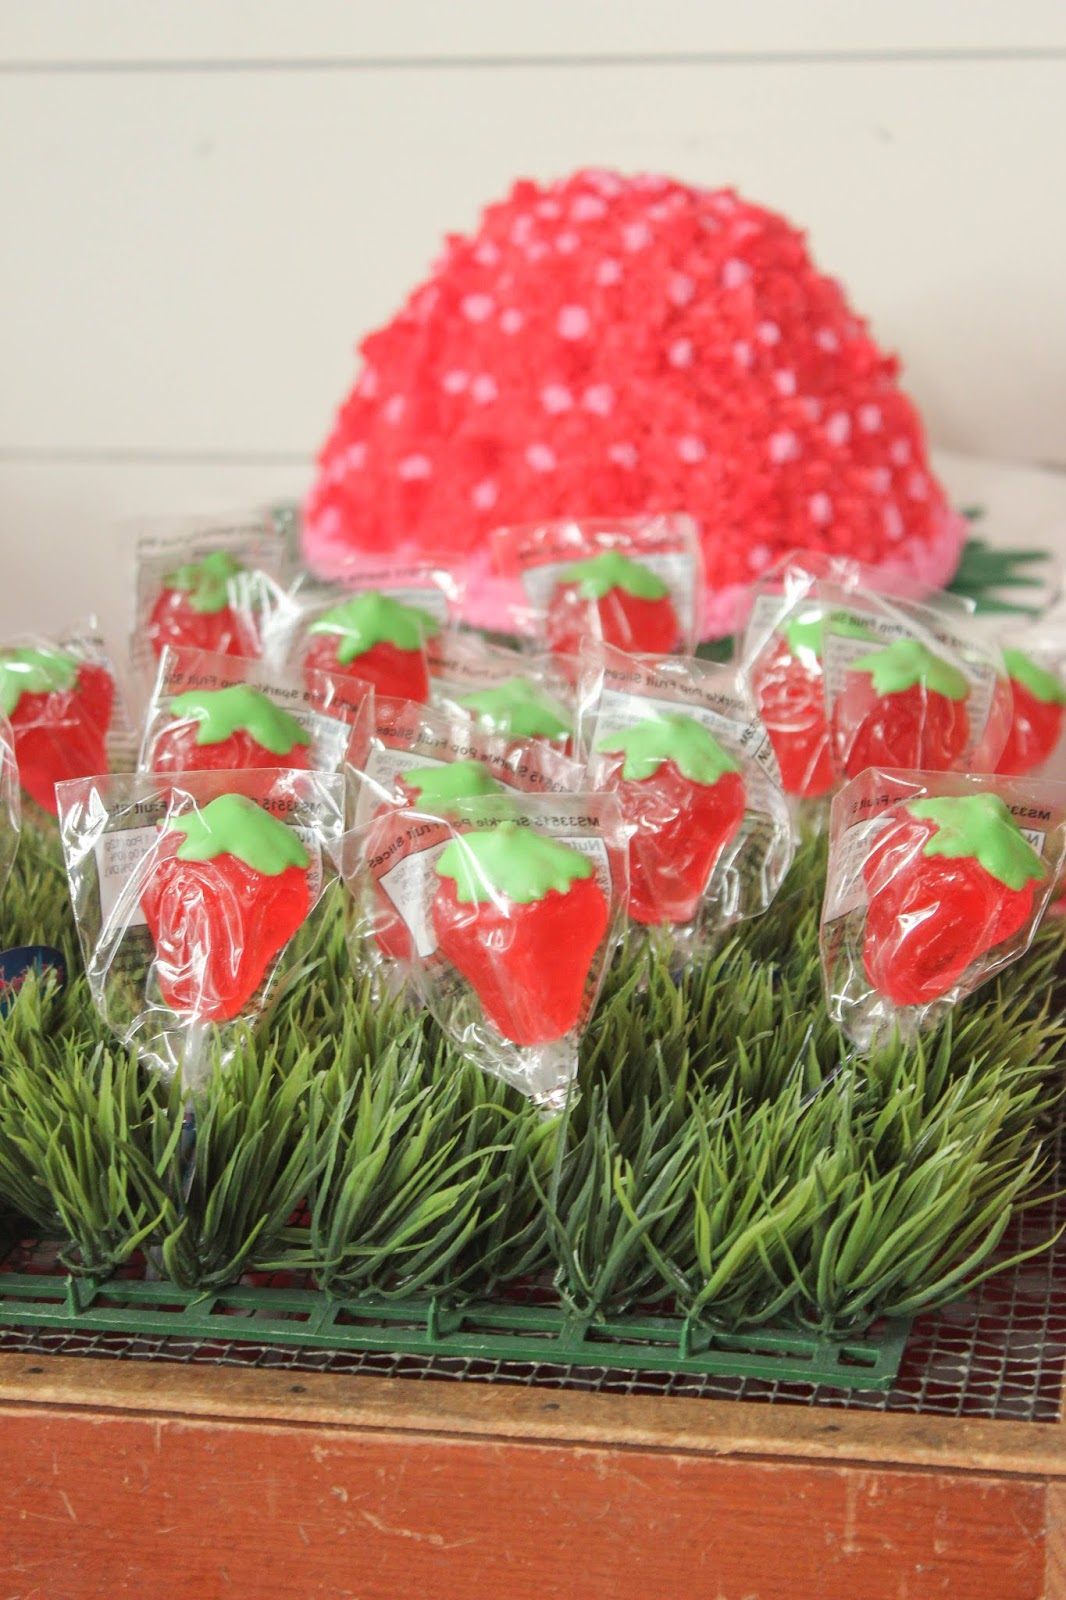 Strawberry themed birthday favors